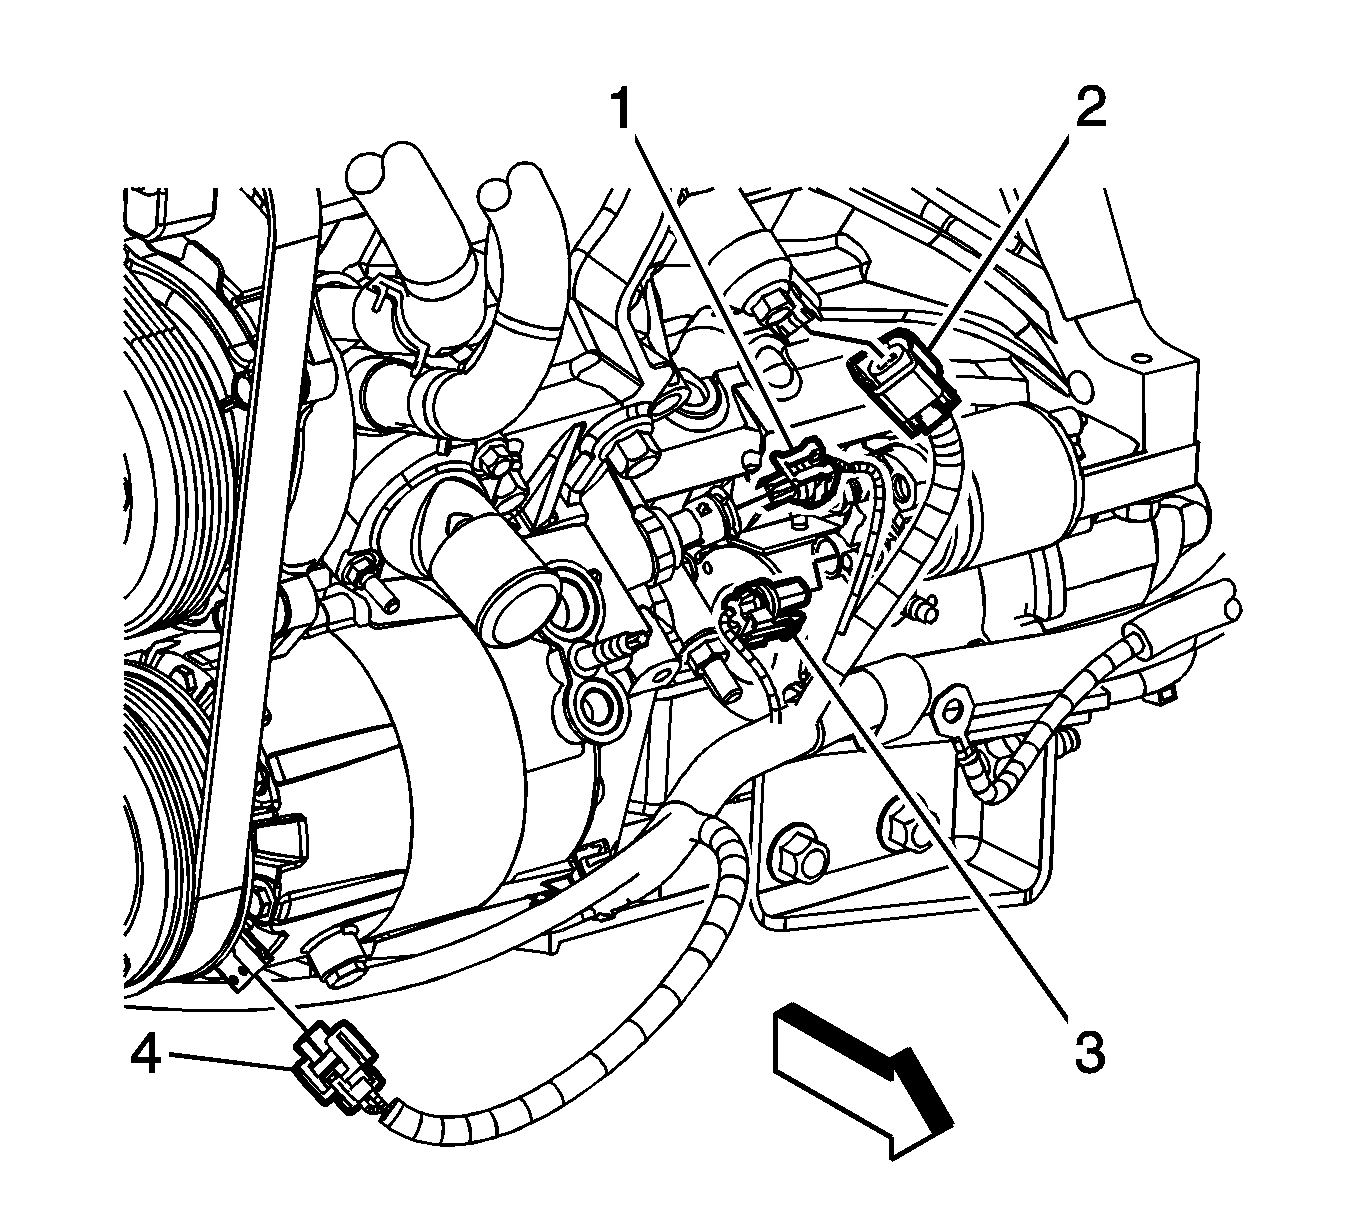 [WY_6093] Chevy Oil Pressure Sending Unit On Oil Sending